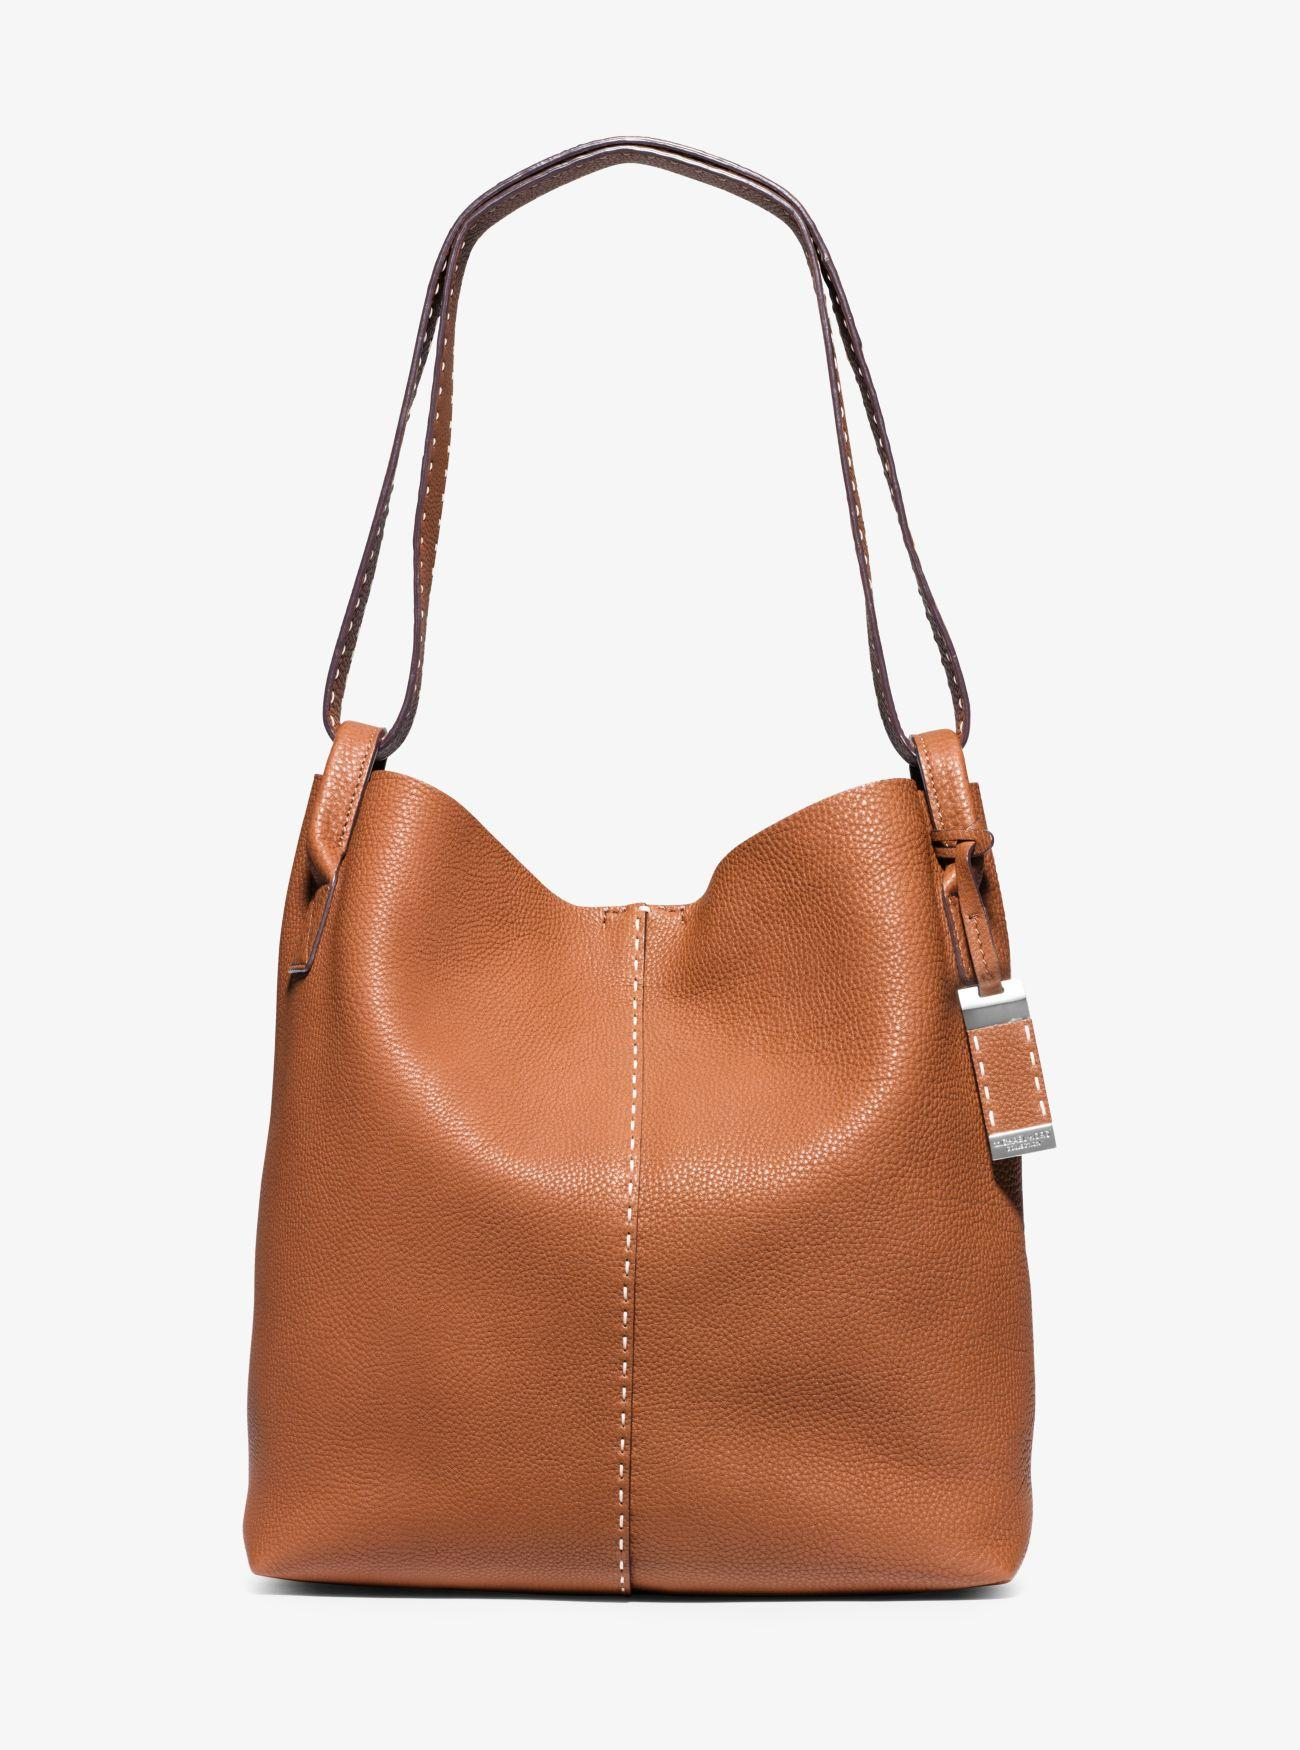 9469a1d32fb0 Michael Kors Rogers Large Leather Hobo in Brown - Lyst